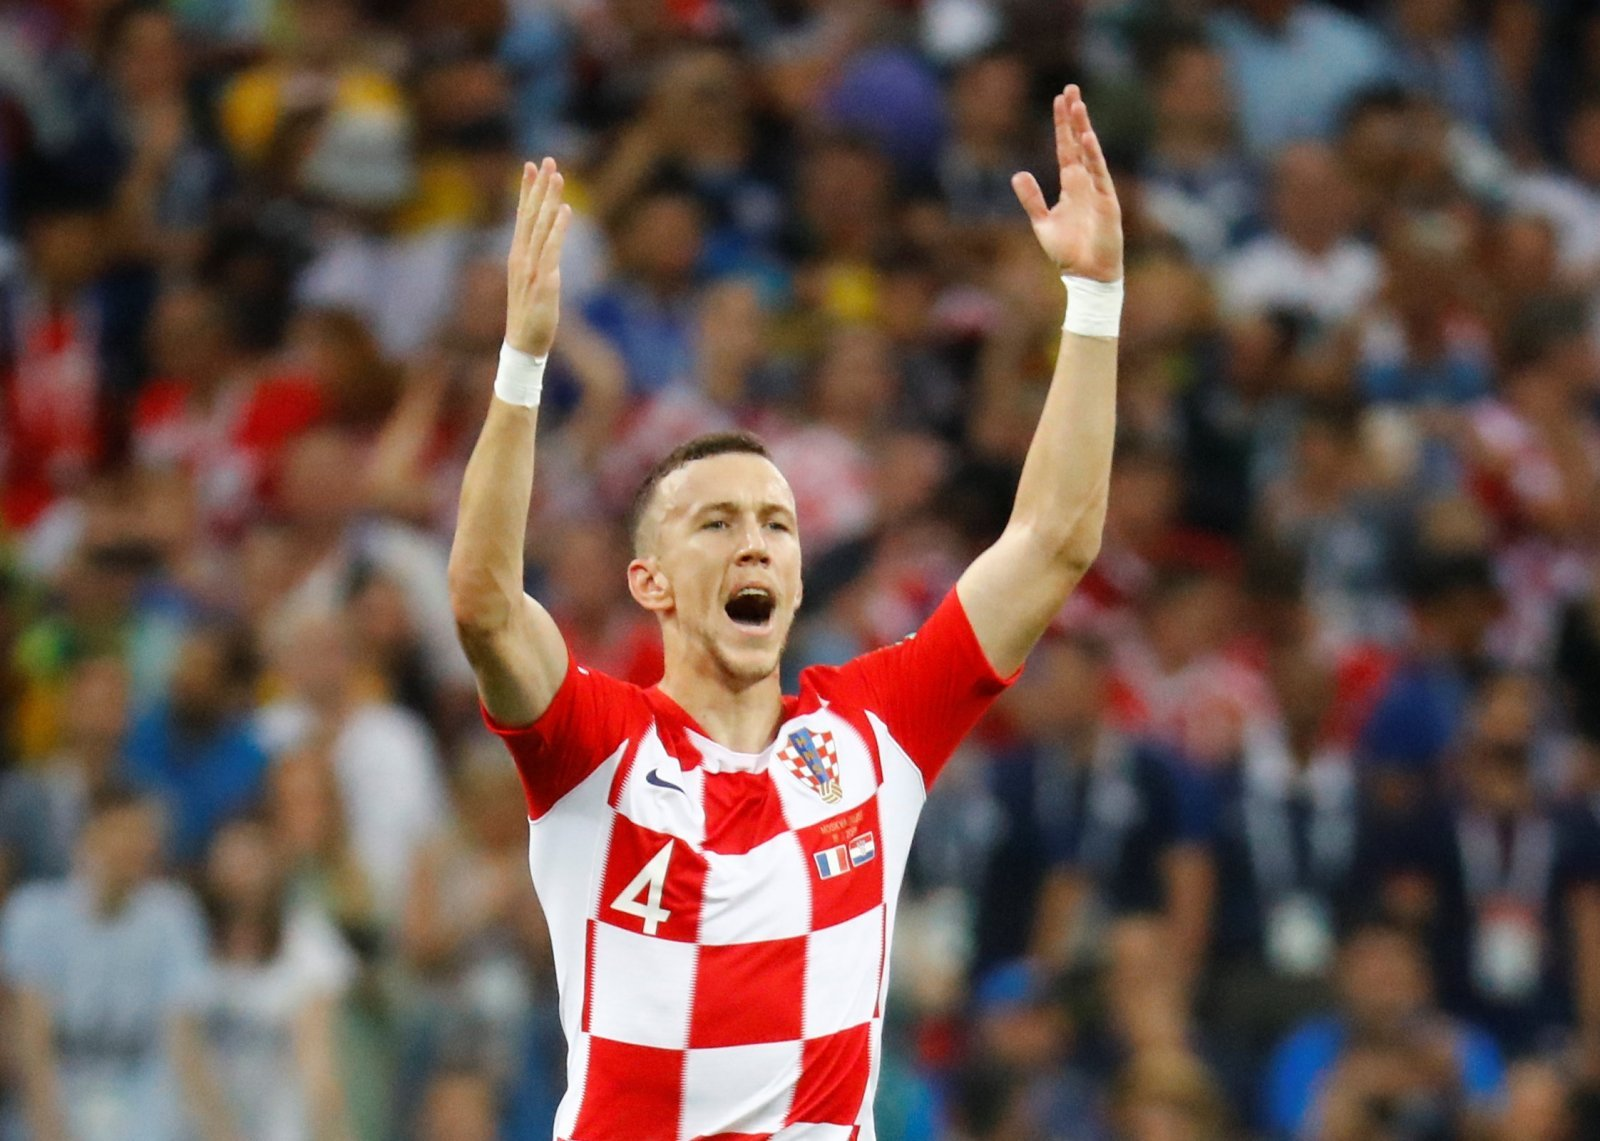 Perisic signing would finish off Jose Mourinho's Manchester United rebuild